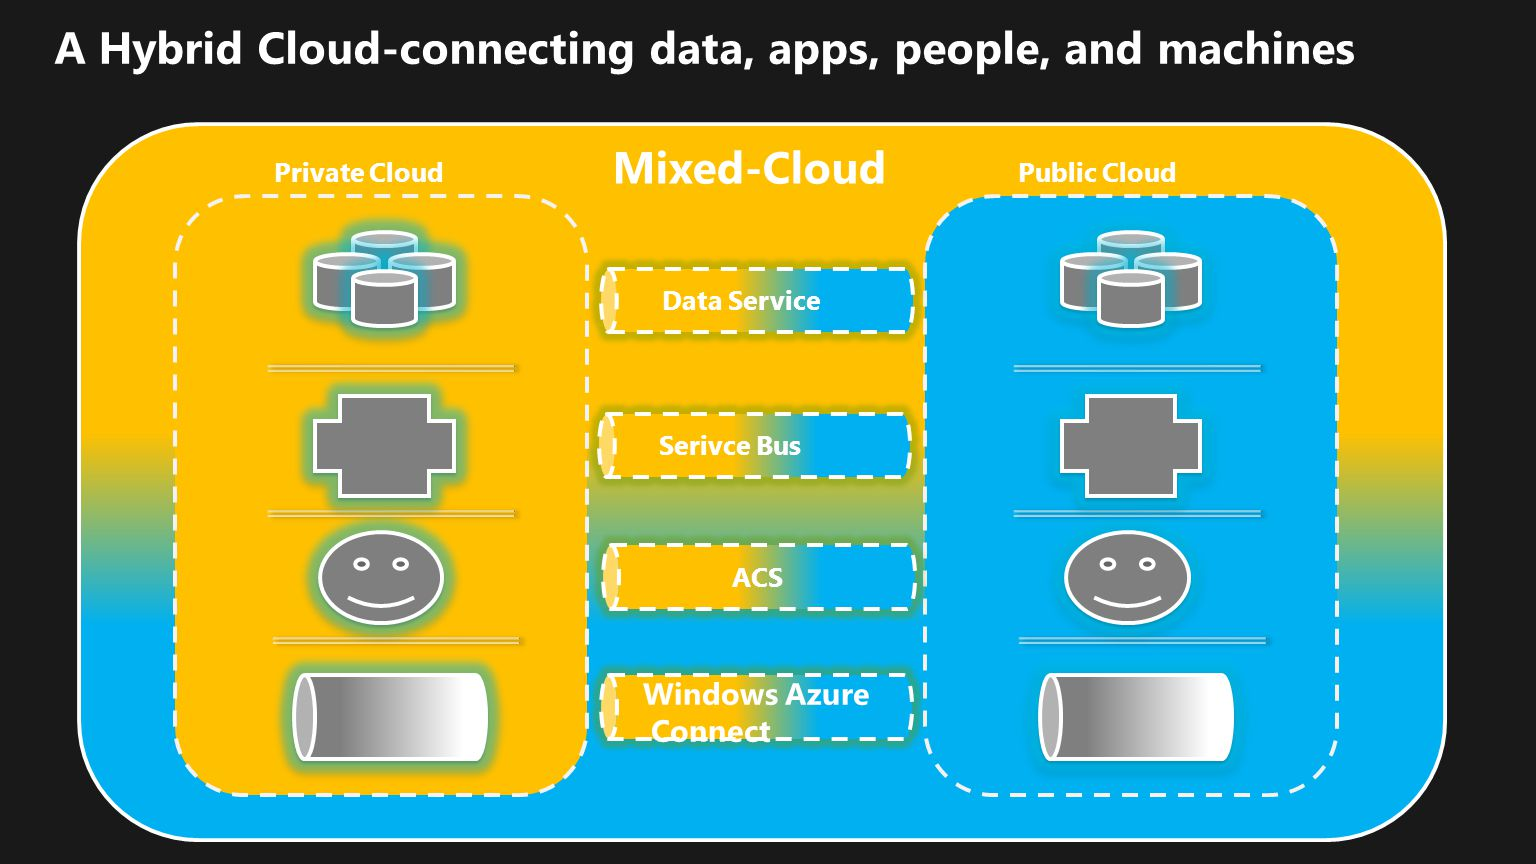 A Hybrid Cloud-connecting data, apps, people, and machines